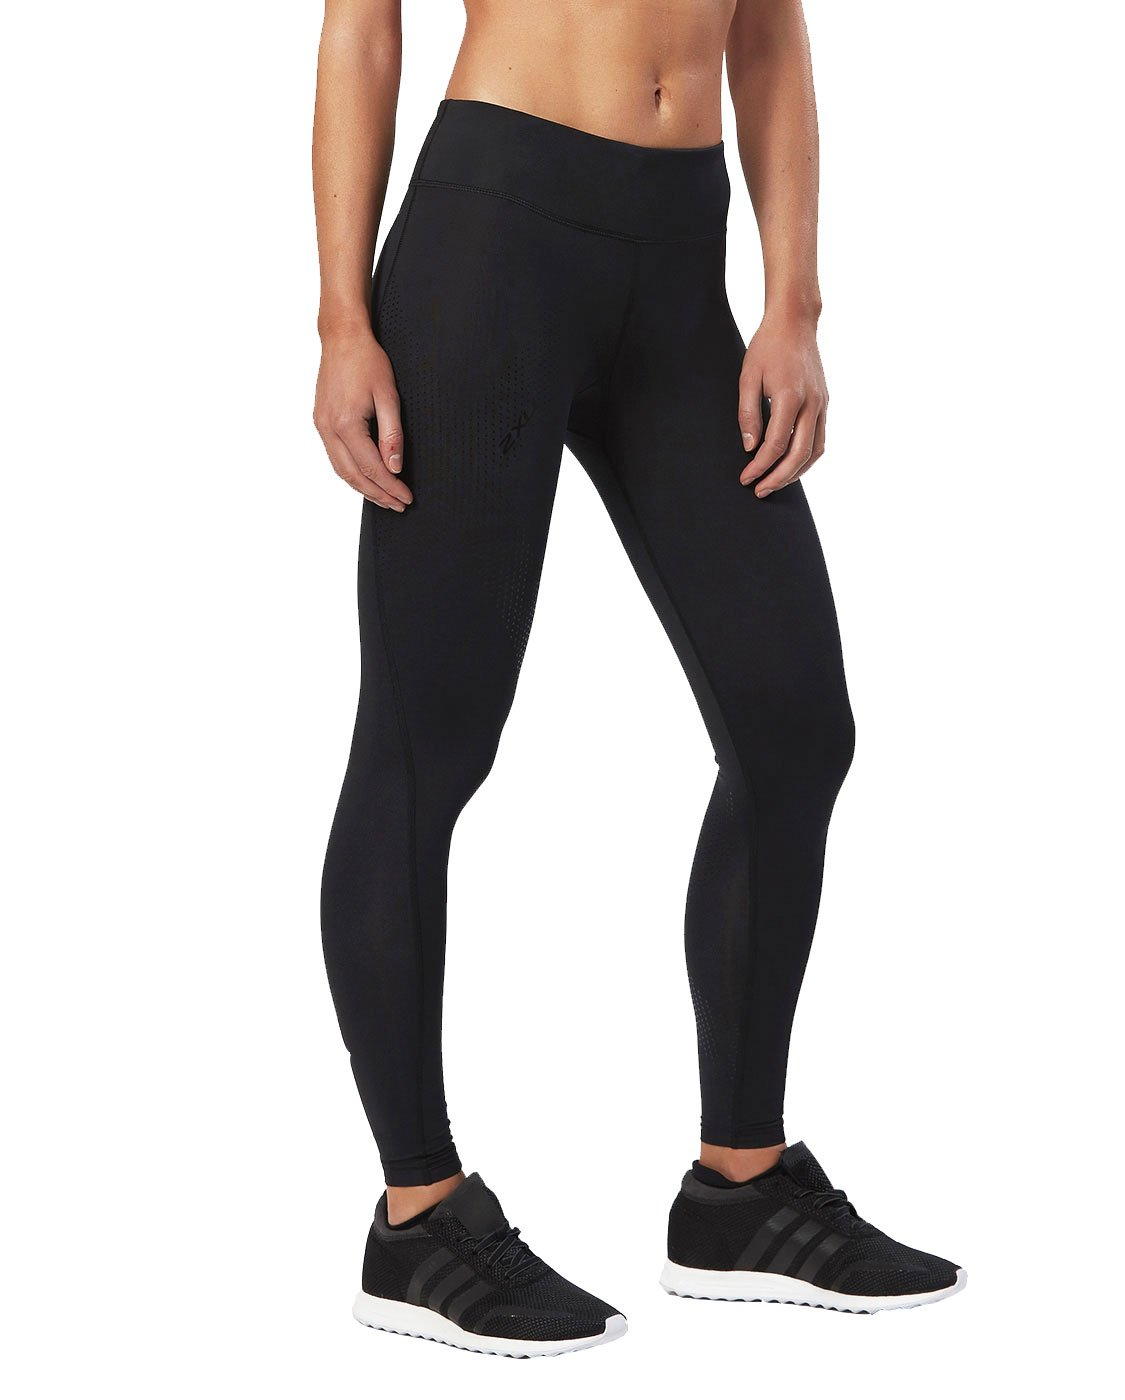 2XU Women's Mid-Rise Compression Tights, Black/Dotted Black Logo, Small-Tall by 2XU